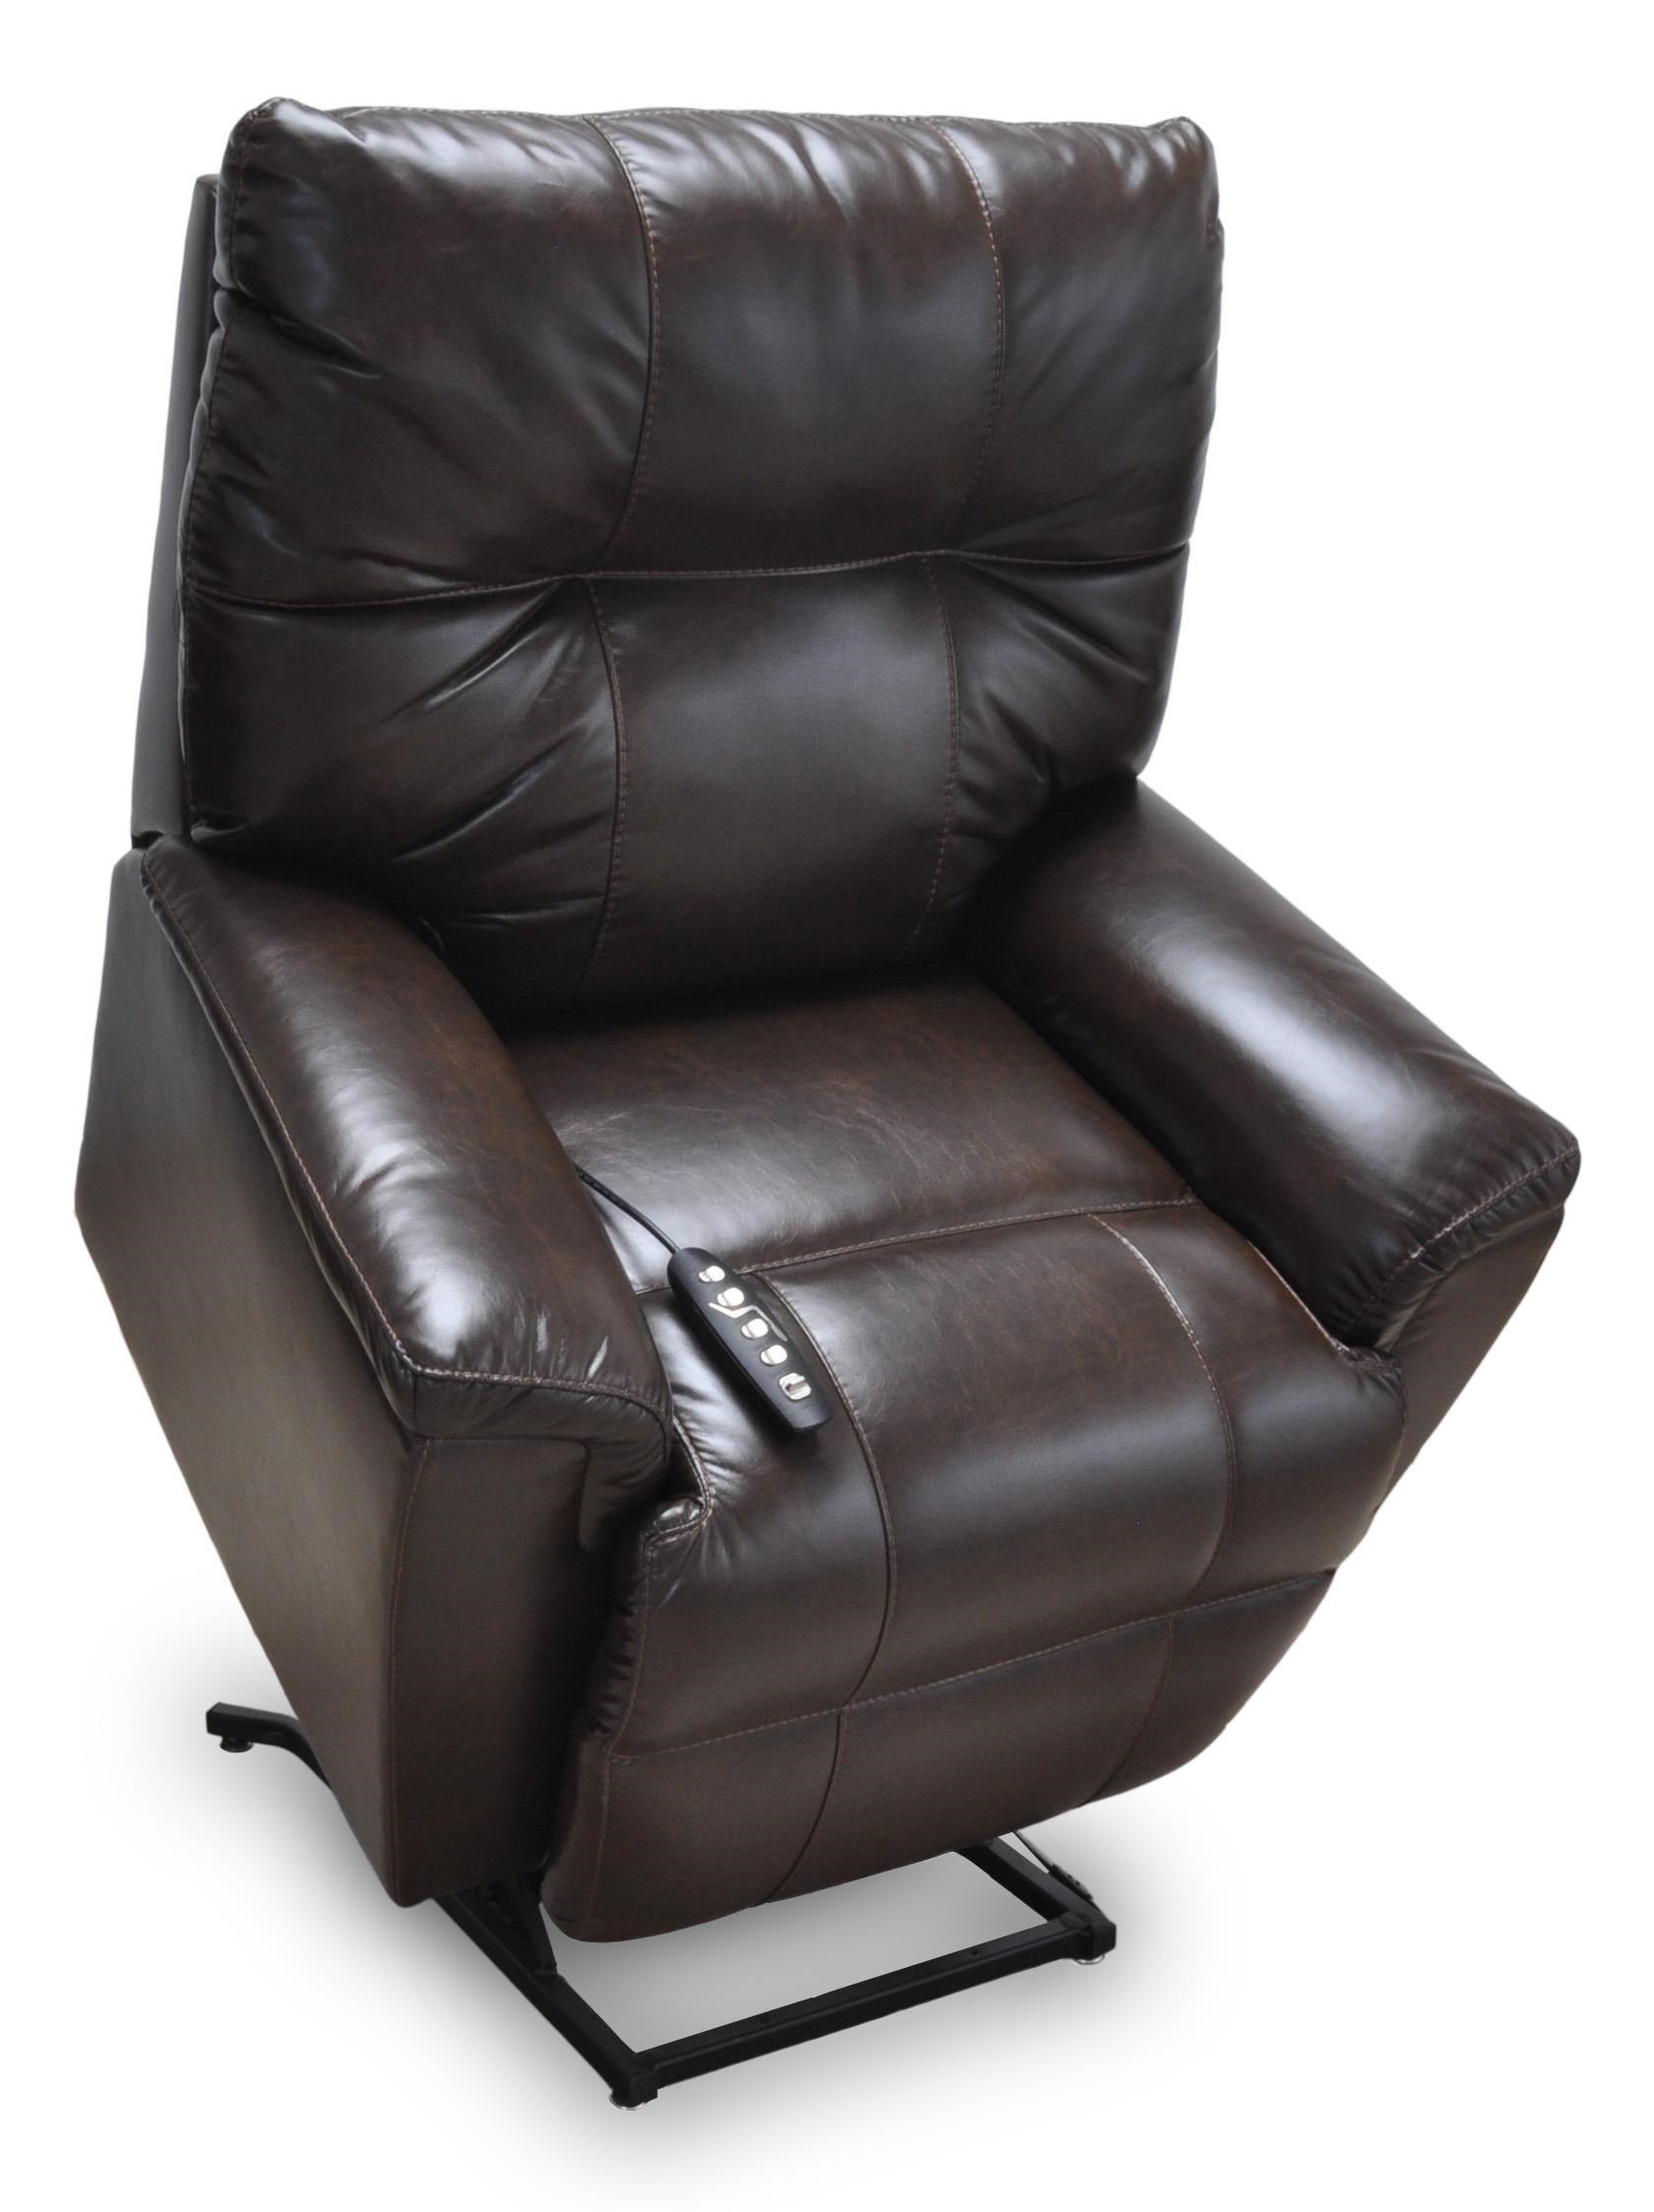 Franklin Lift and Power Recliners Finn Power Lay Flat Lift Chair with Massage u0026 Power Headrest - Great American Home Store - Lift Recliner  sc 1 st  Great American Home Store & Franklin Lift and Power Recliners Finn Power Lay Flat Lift Chair ... islam-shia.org